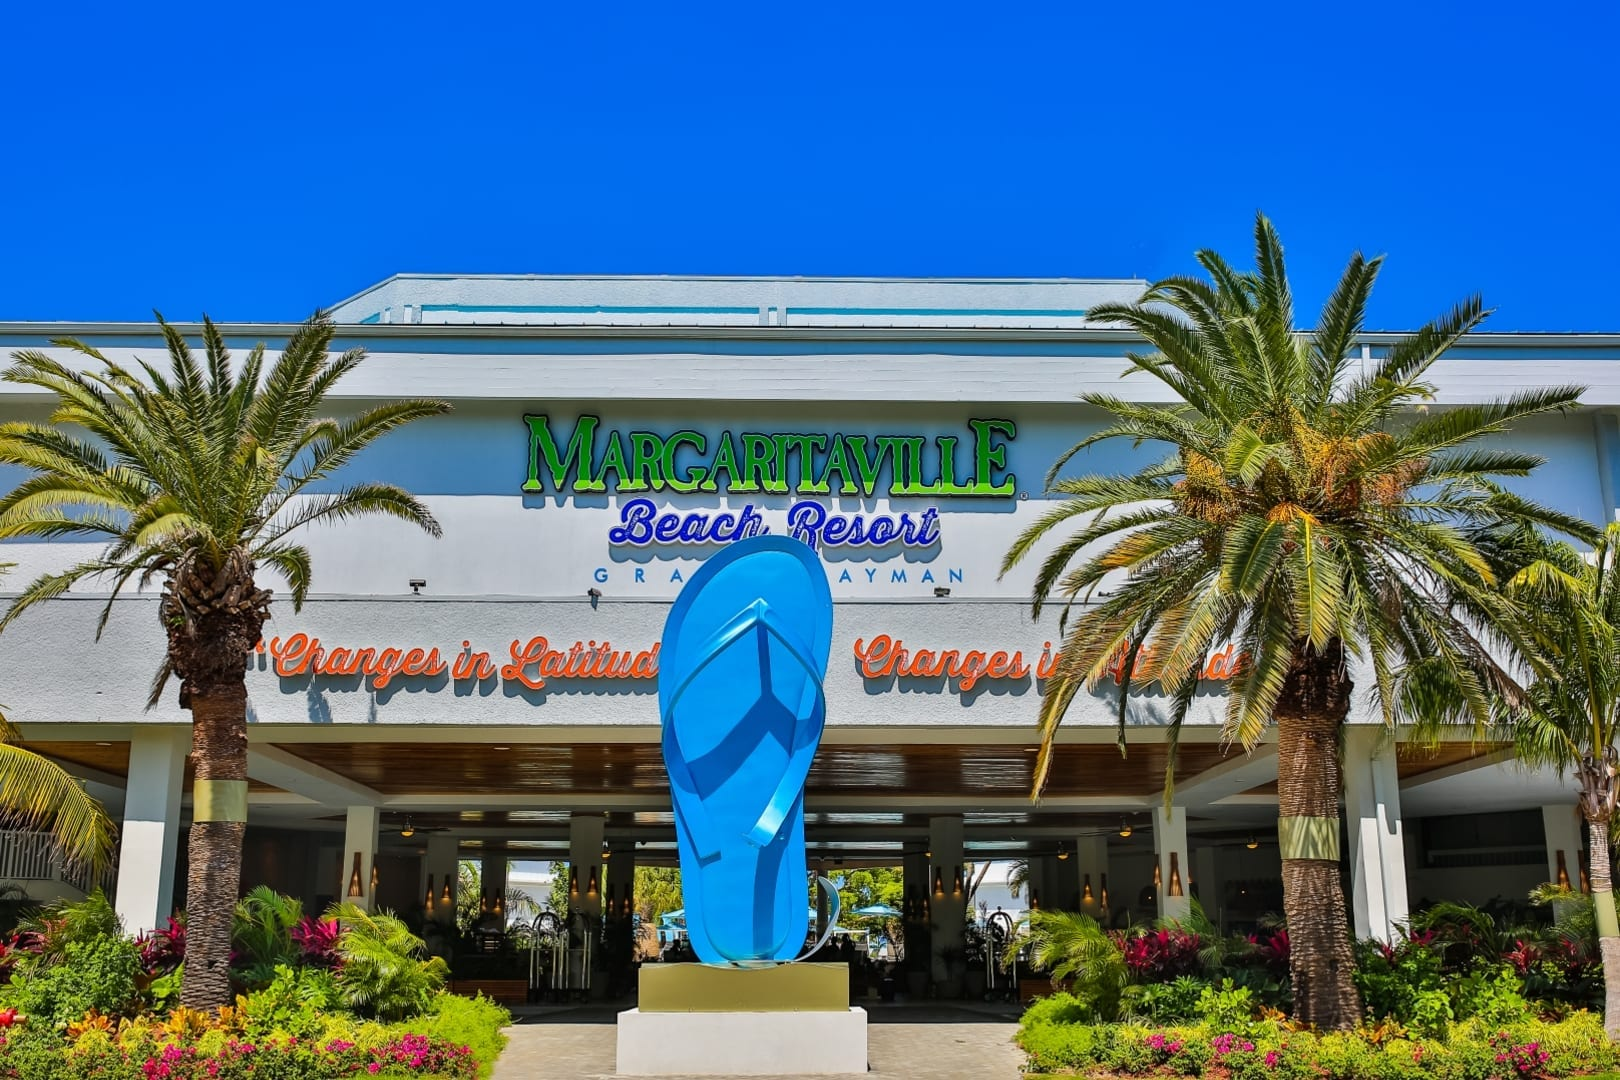 Margaritaville Cayman Islands